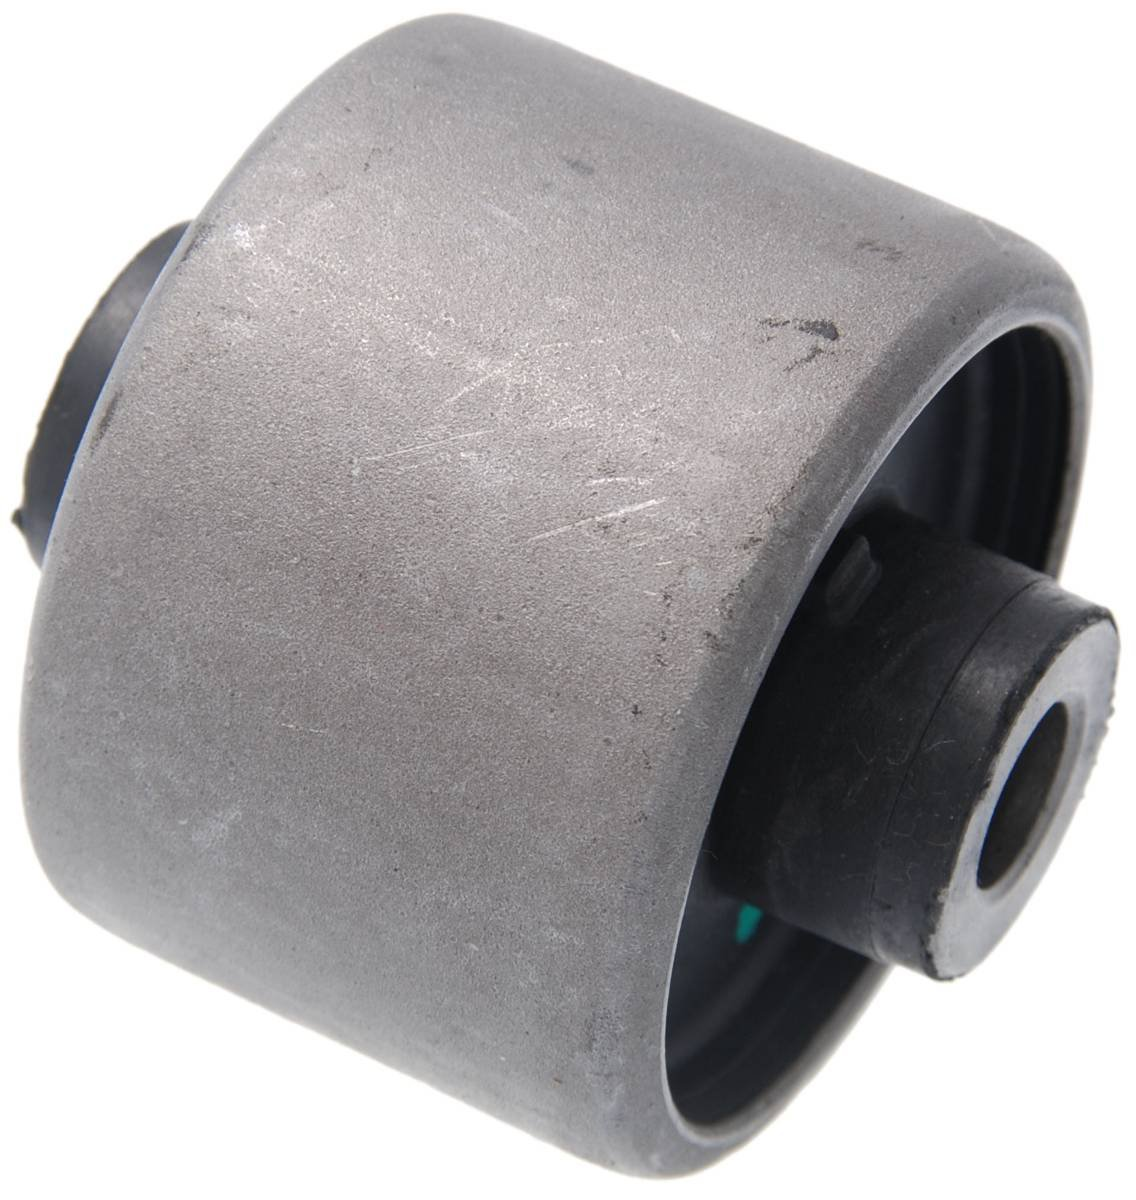 REAR ARM BUSHING FRONT ARM - Febest # NAB-L32B - 1 Year Warranty